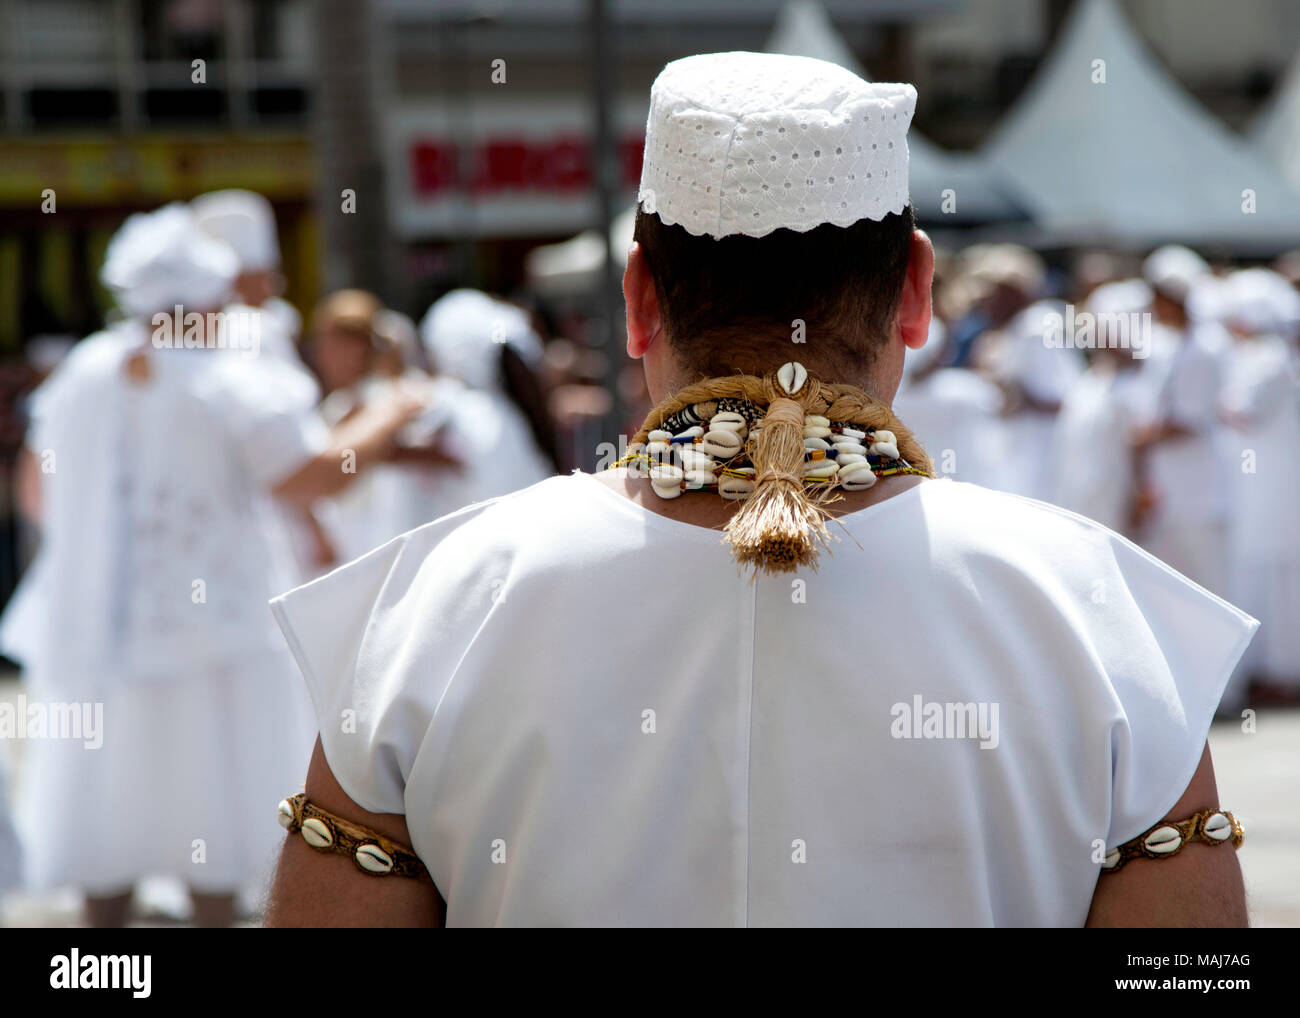 Campinas, SP Brazil - April 1 2018: practicioners of afro-brazilian religions perform a cleansing ritual during easter cerimonies Stock Photo